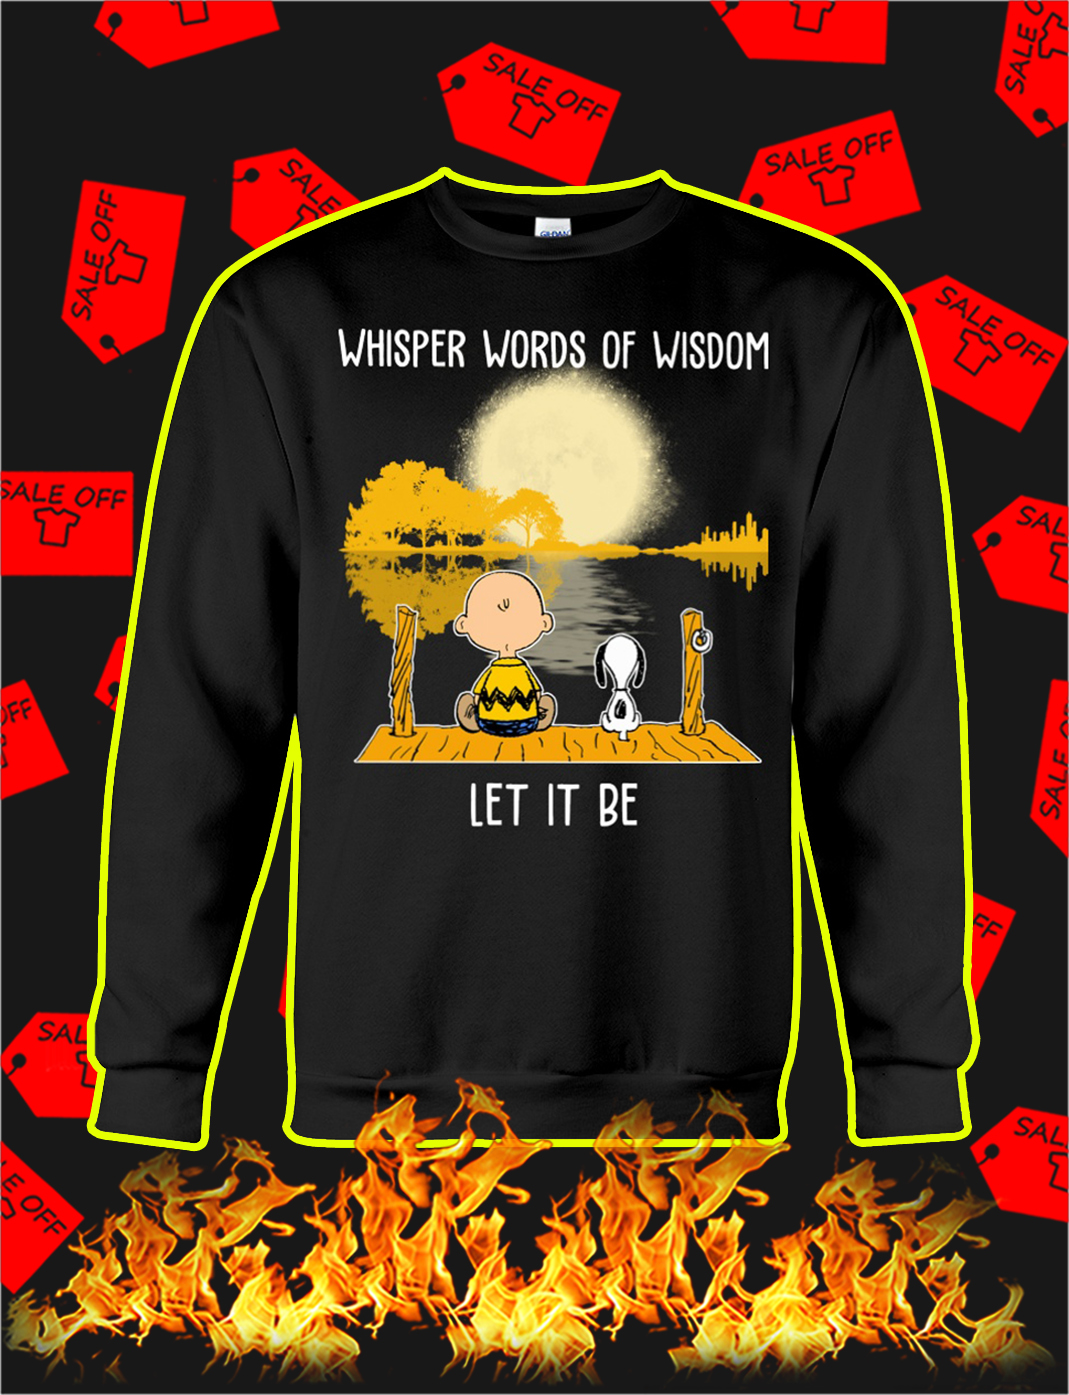 Snoopy and charlie brown Whisper words of wisdom let it be sweatshirt